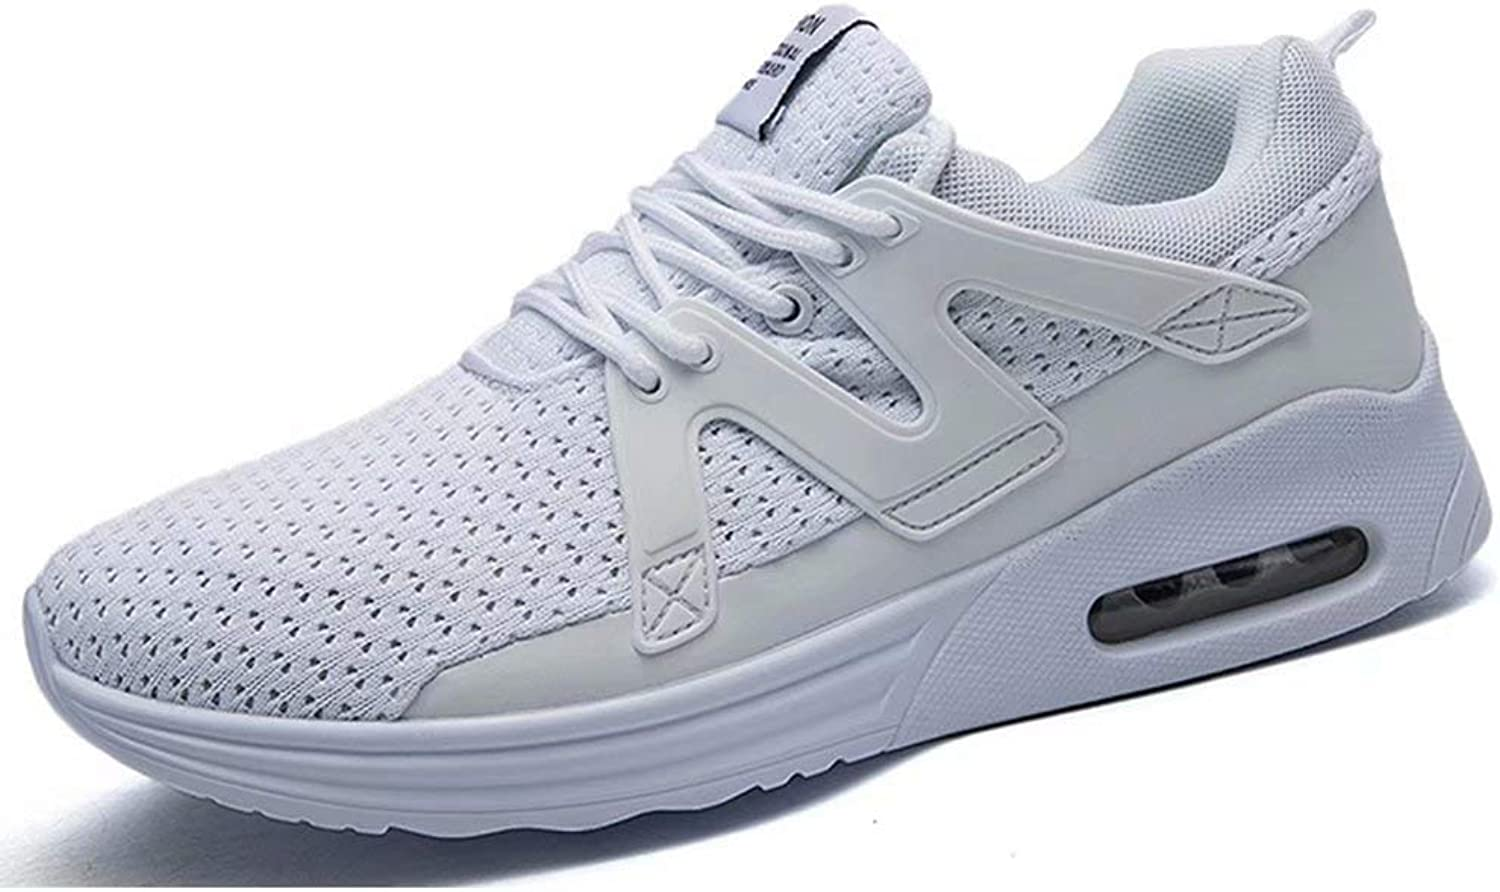 JHY Air Cuhion Sport shoes Breathable Road Running Cacual Sneakers for Men and Women